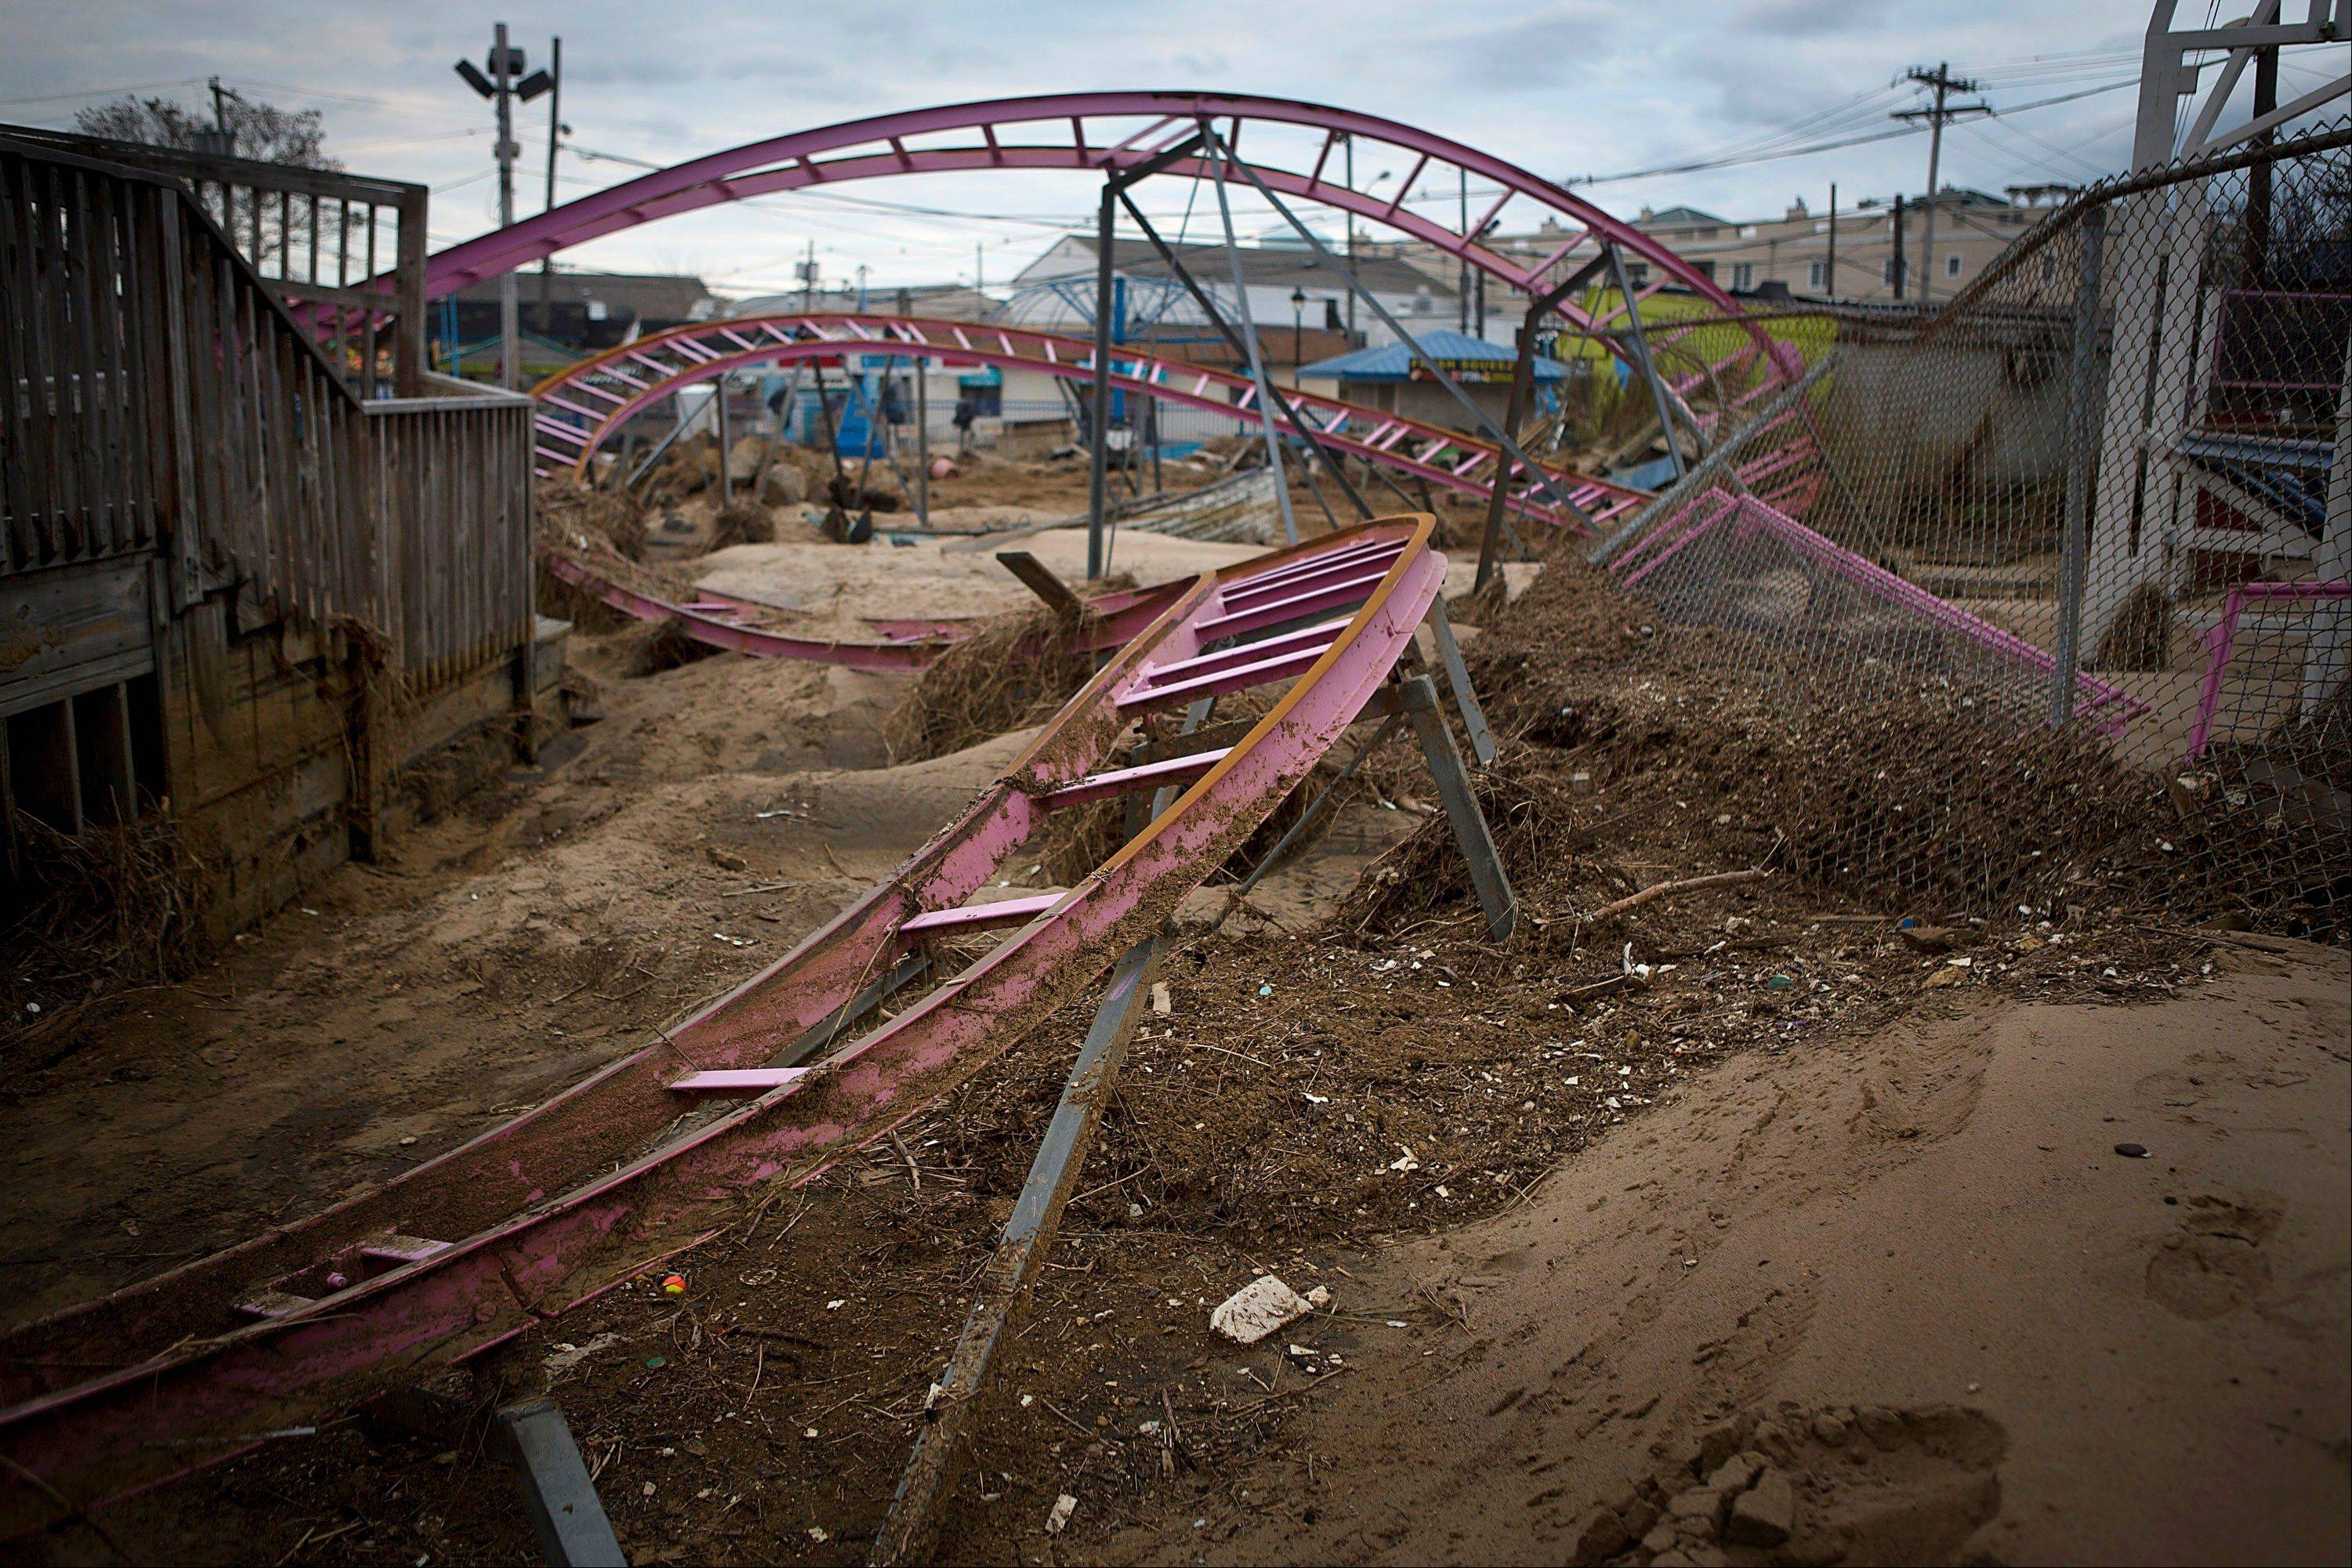 Tracks of a roller coaster sit in the sand Friday at an amusement park in Keansburg, New Jersey.